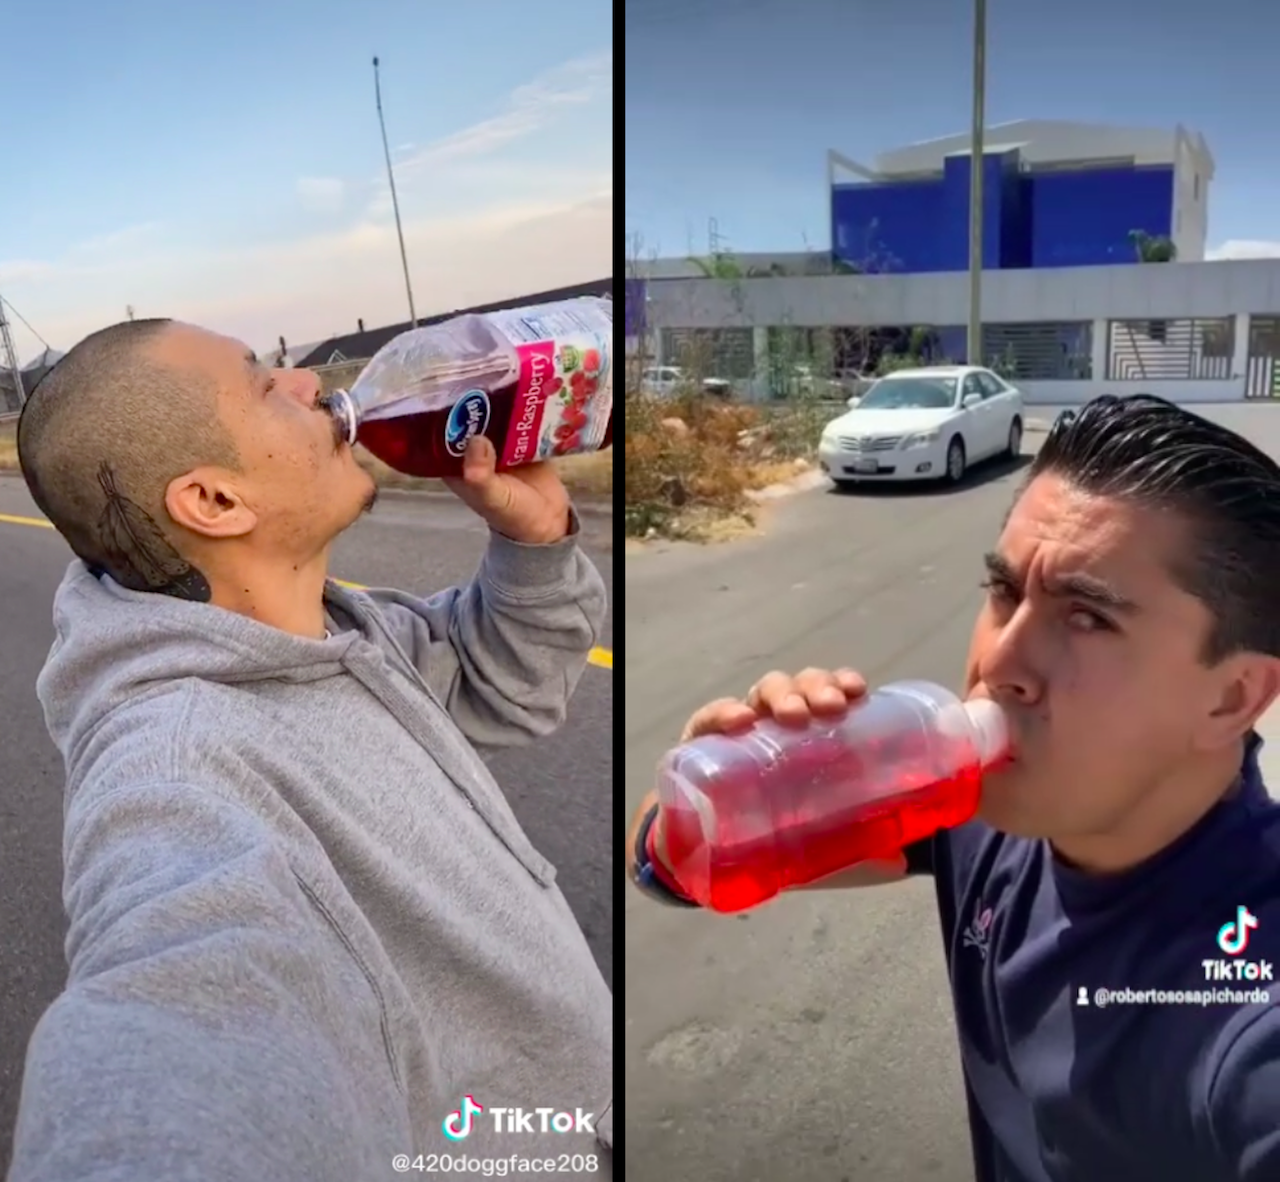 Con patineta y suero, Roberto Sosa recrea video viral